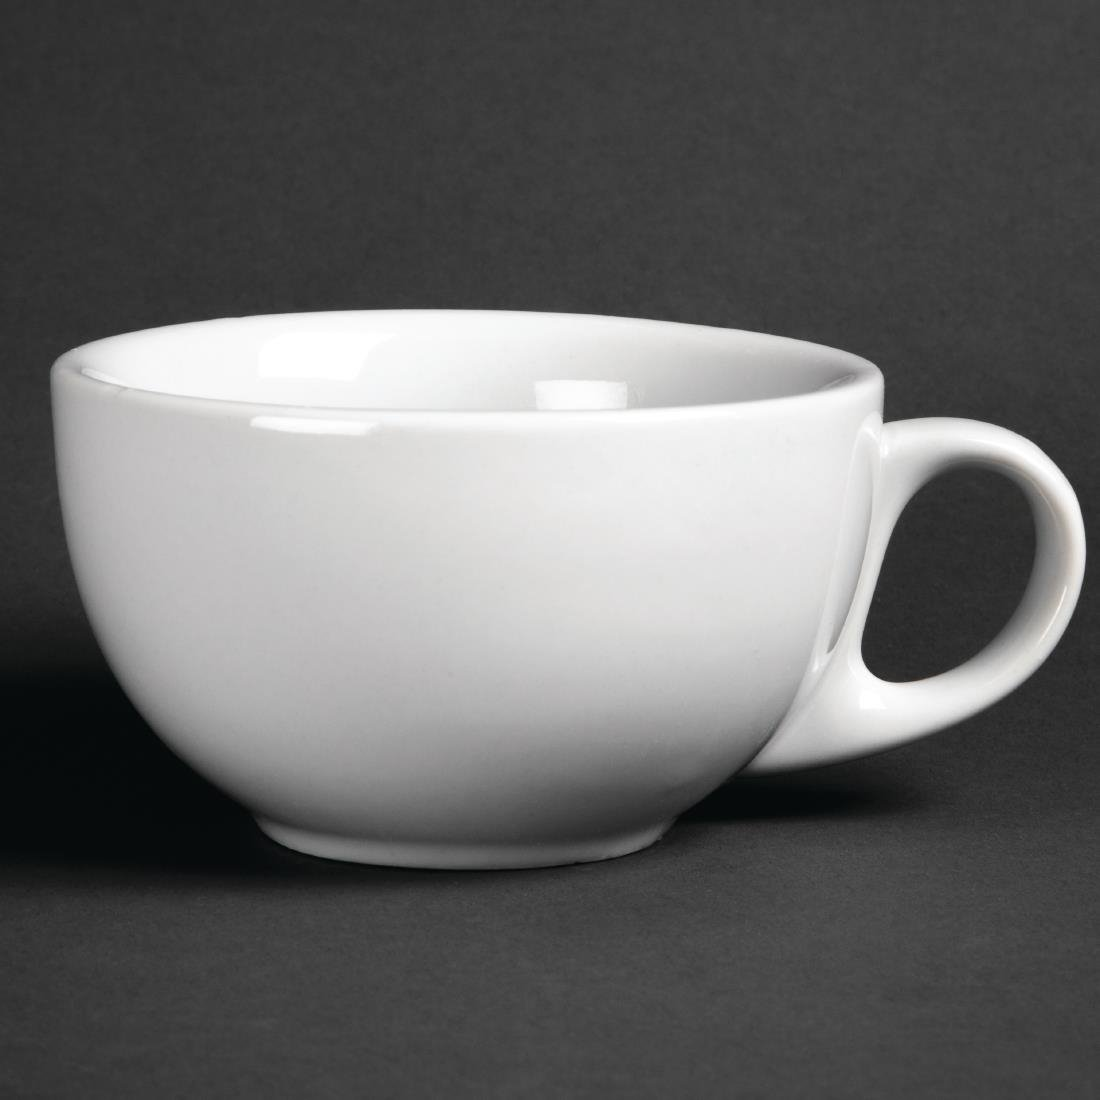 Image of Athena Hotelware Cappuccino Cups 285ml (Pack of 12) Pack of 12